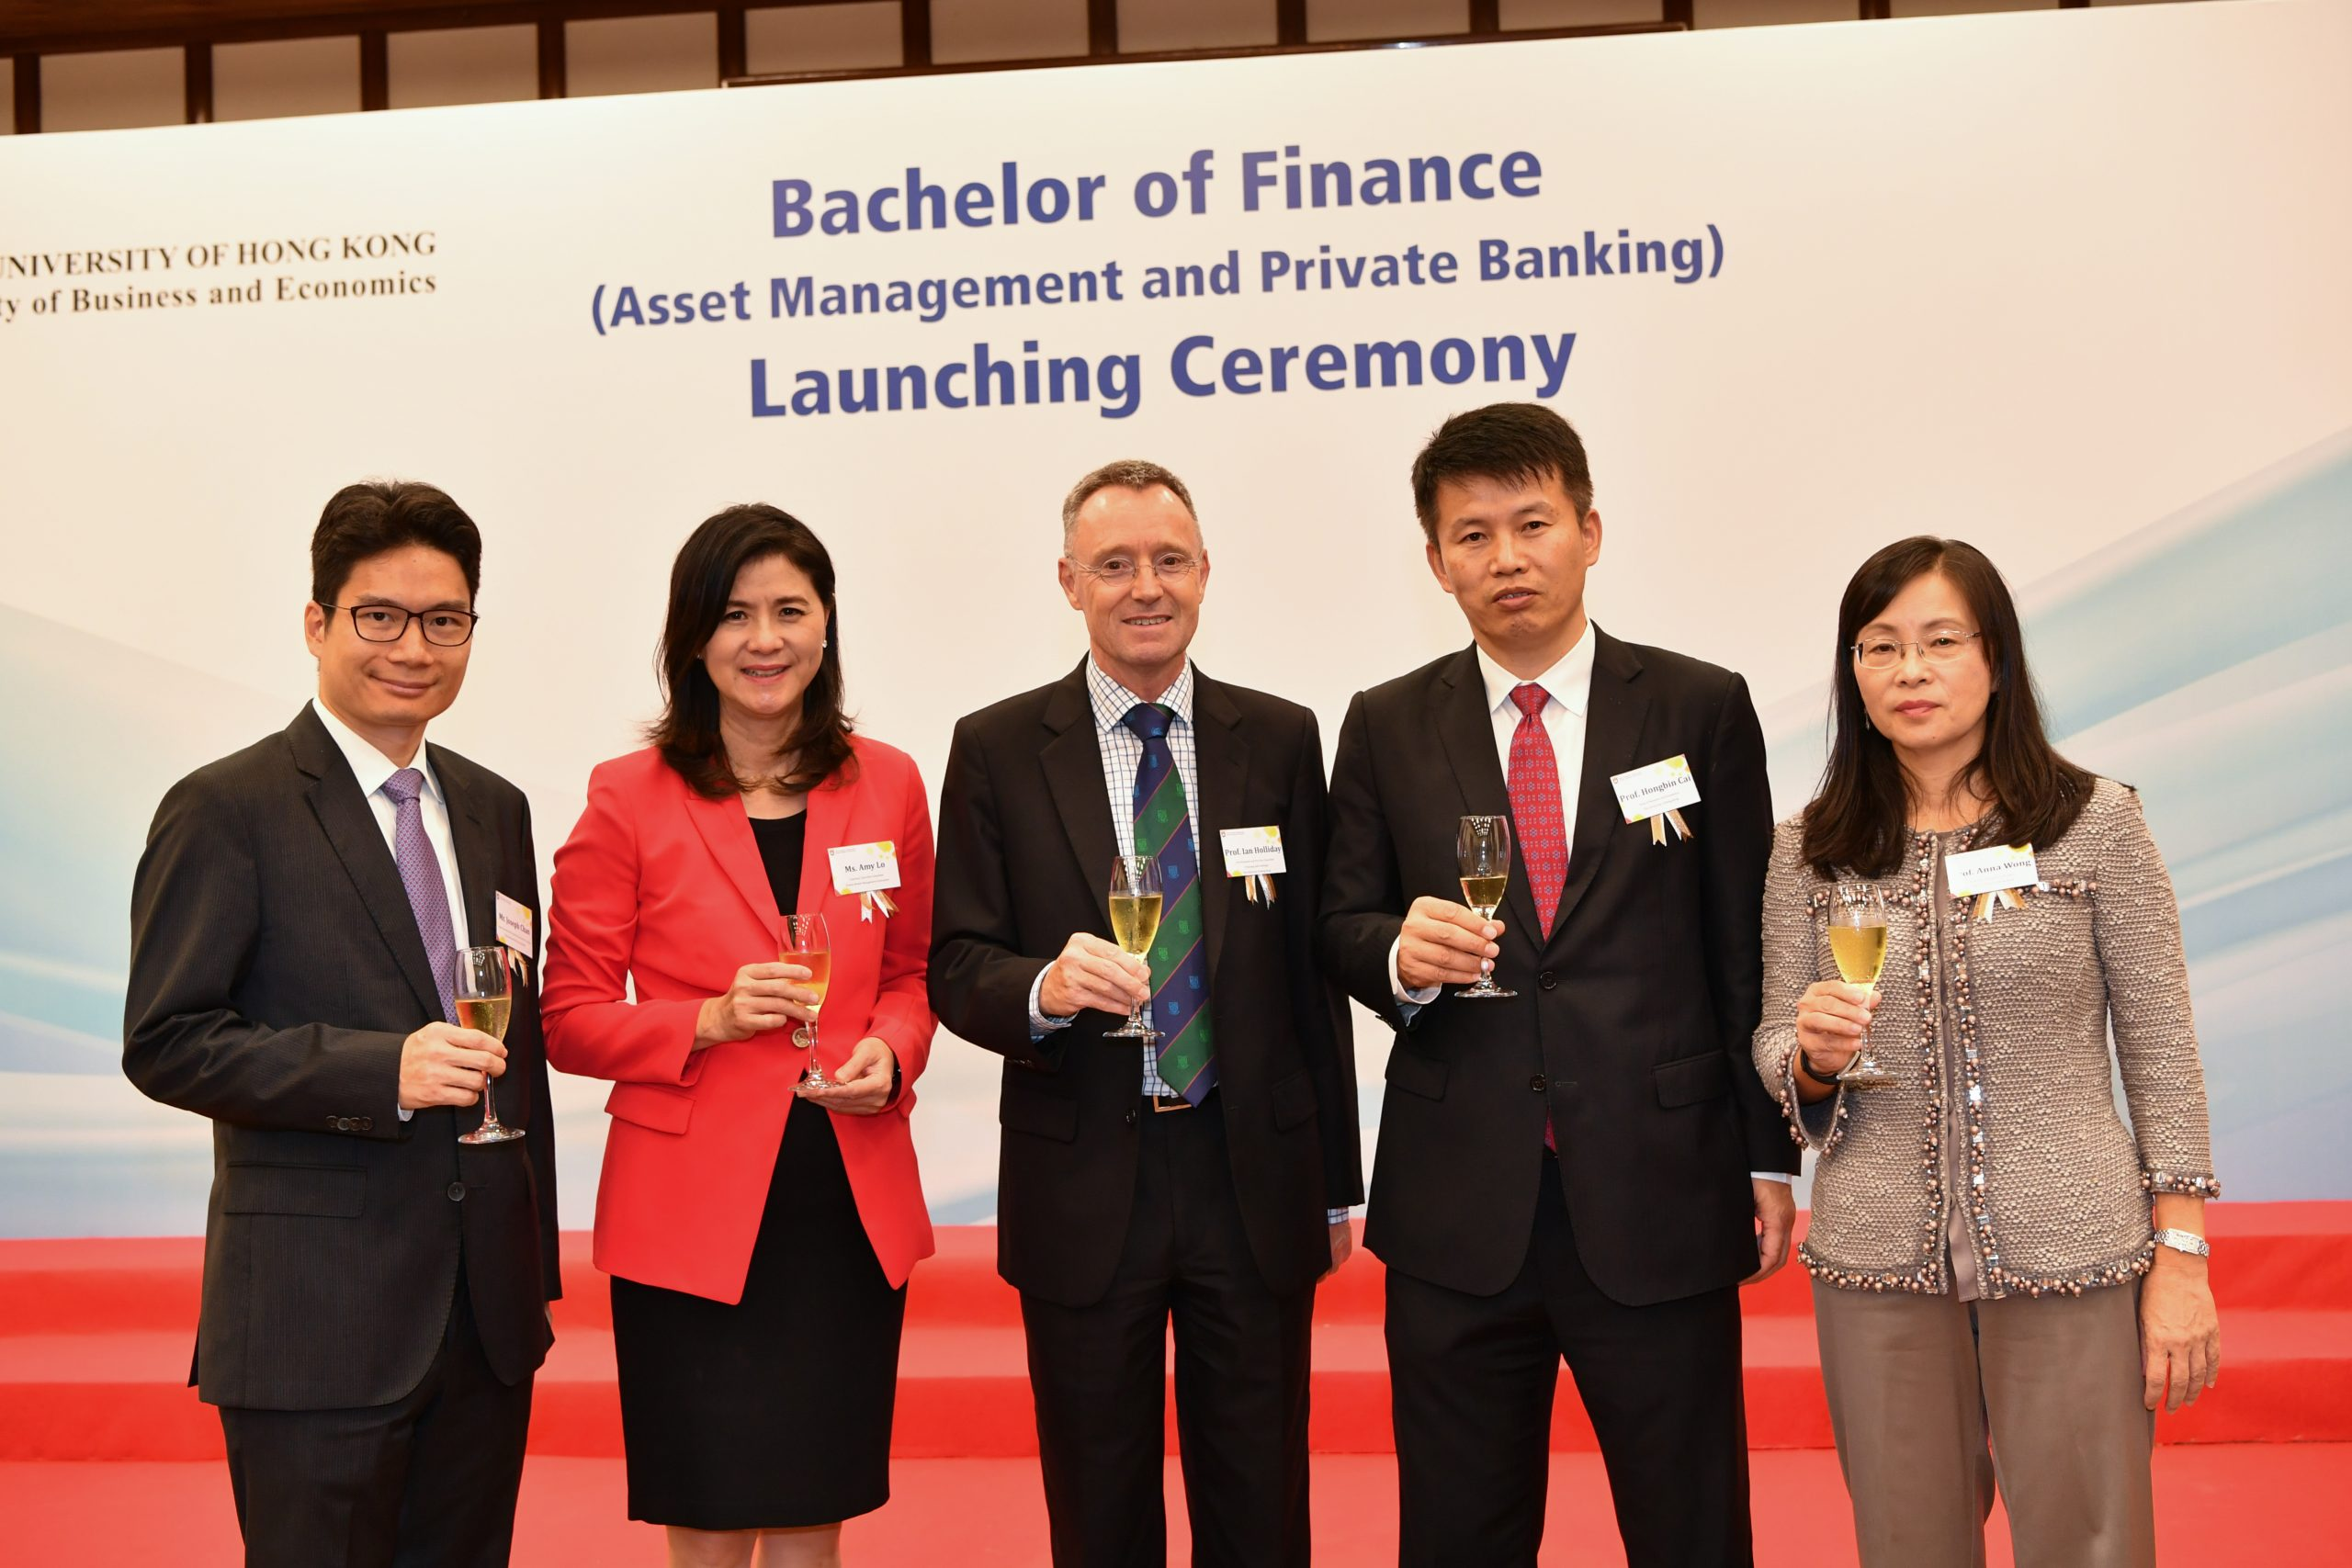 Bachelor of Finance (Asset Management and Private Banking) Launching Ceremony